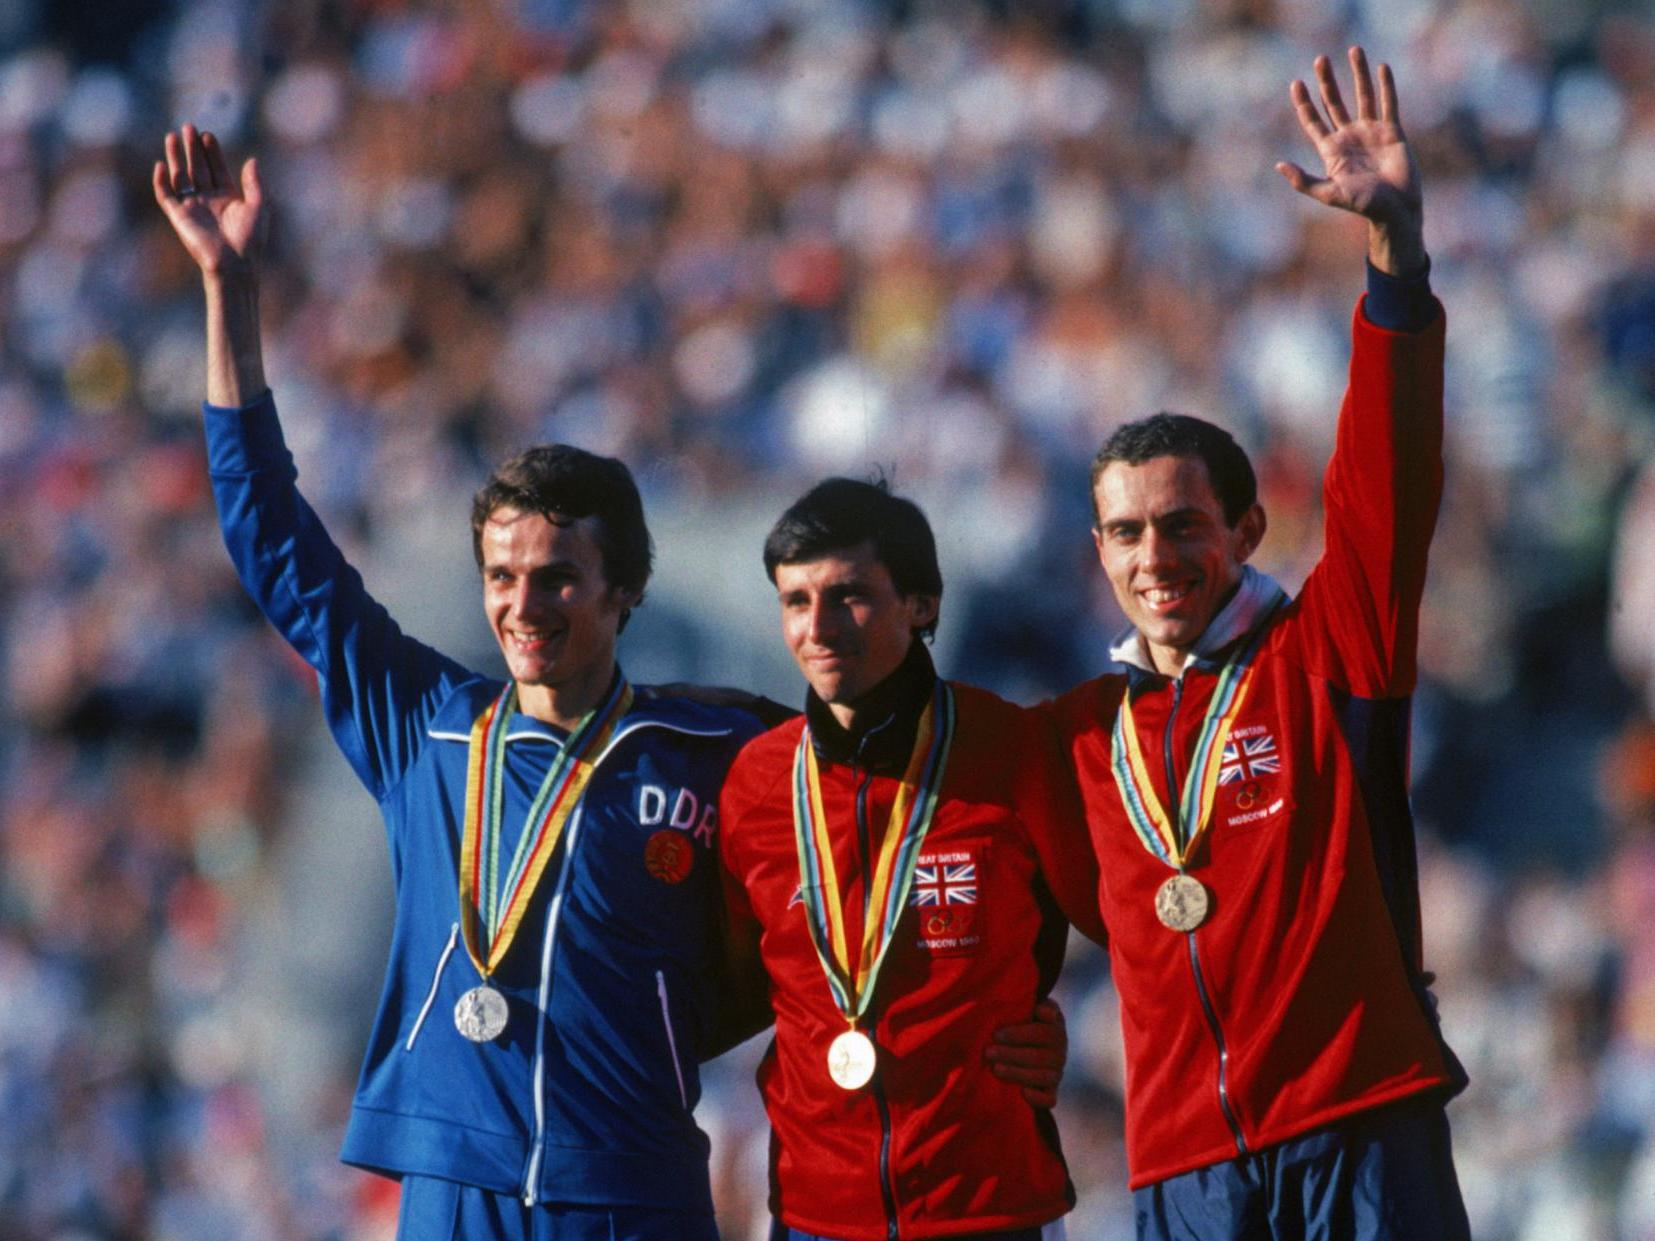 The lessons the 1980 Olympics can teach athletes today